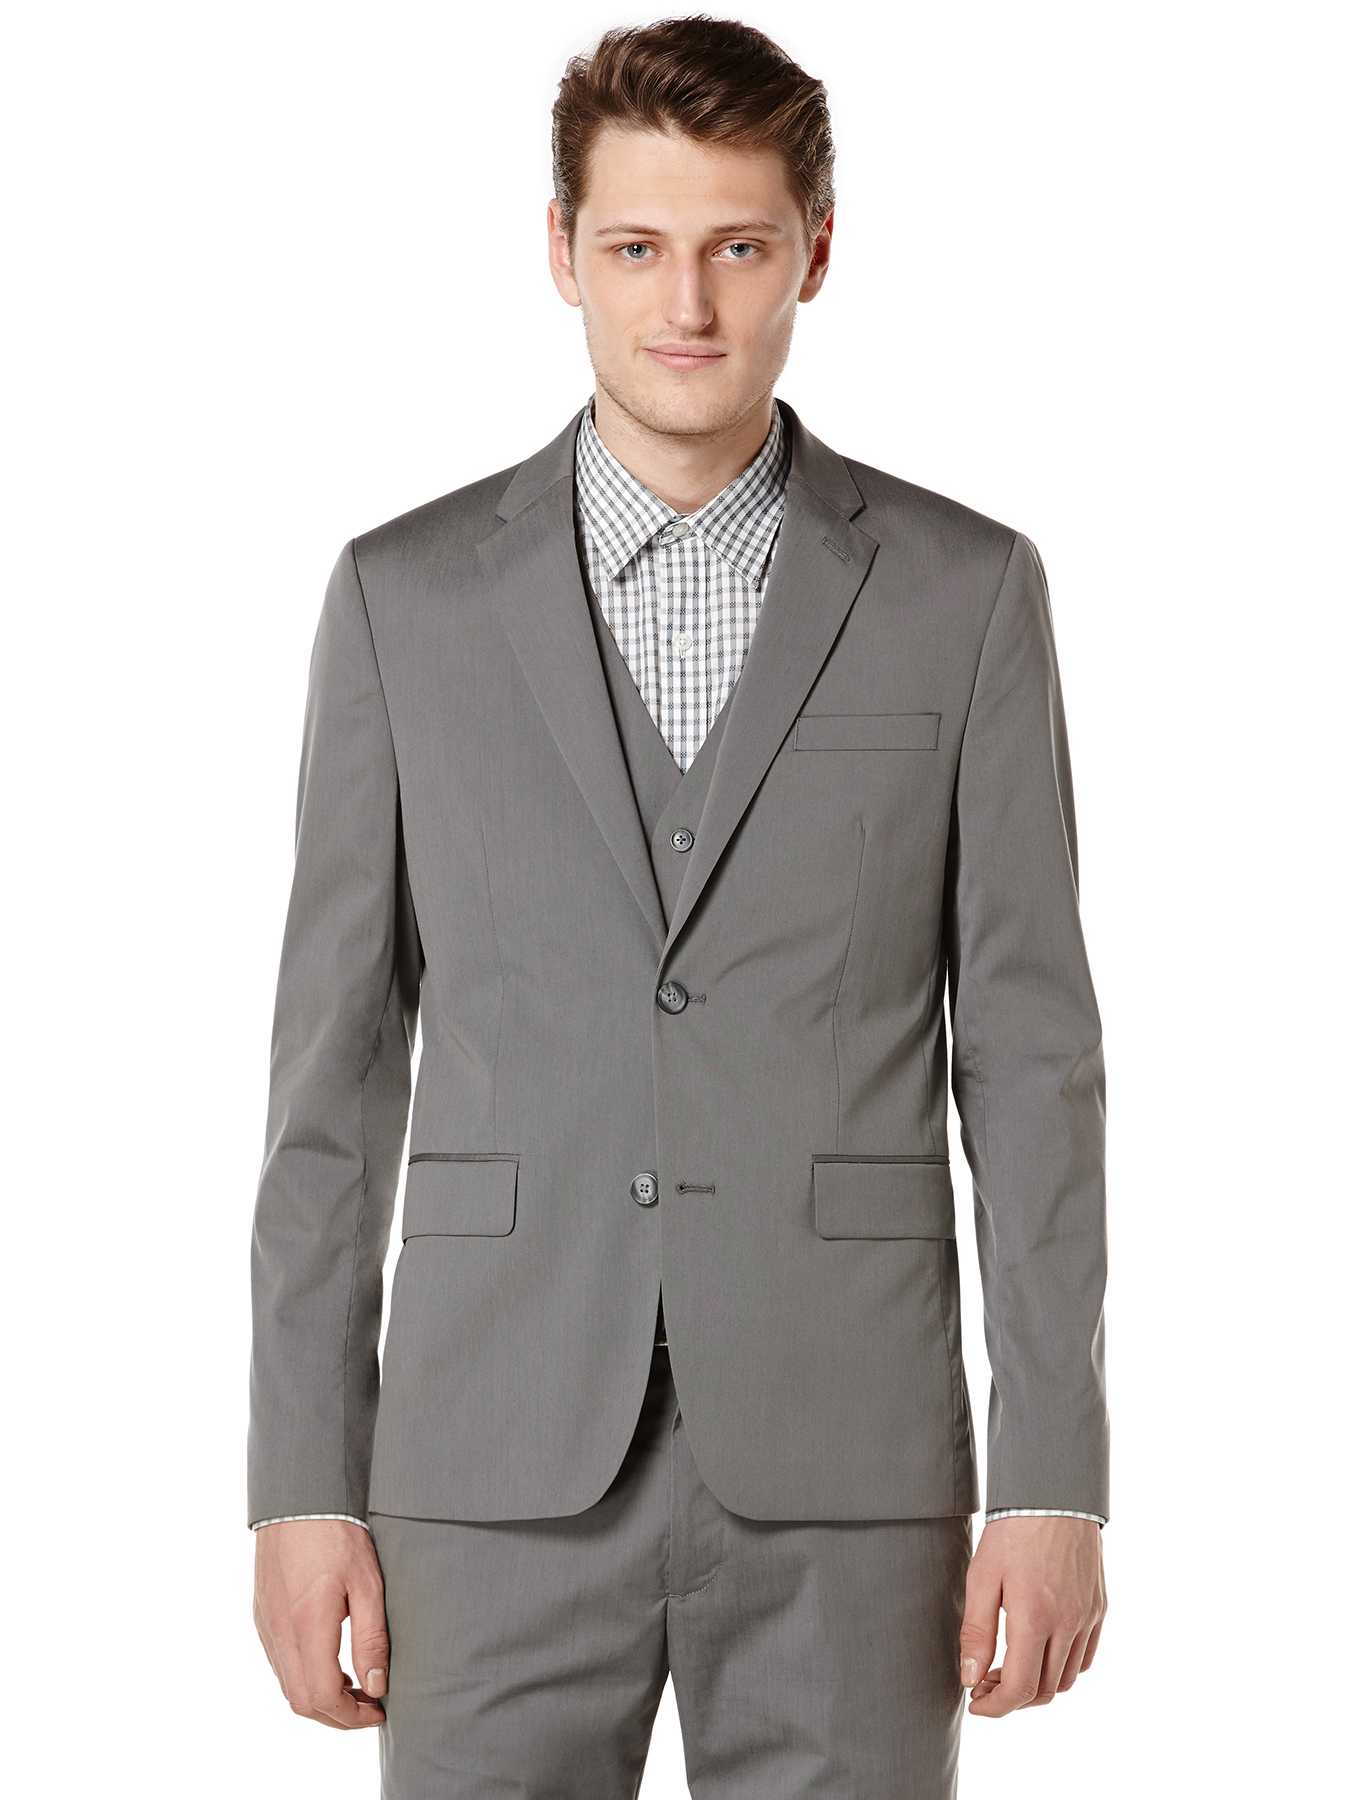 Perry Ellis Slim Fit Iridescent Suit Jacket